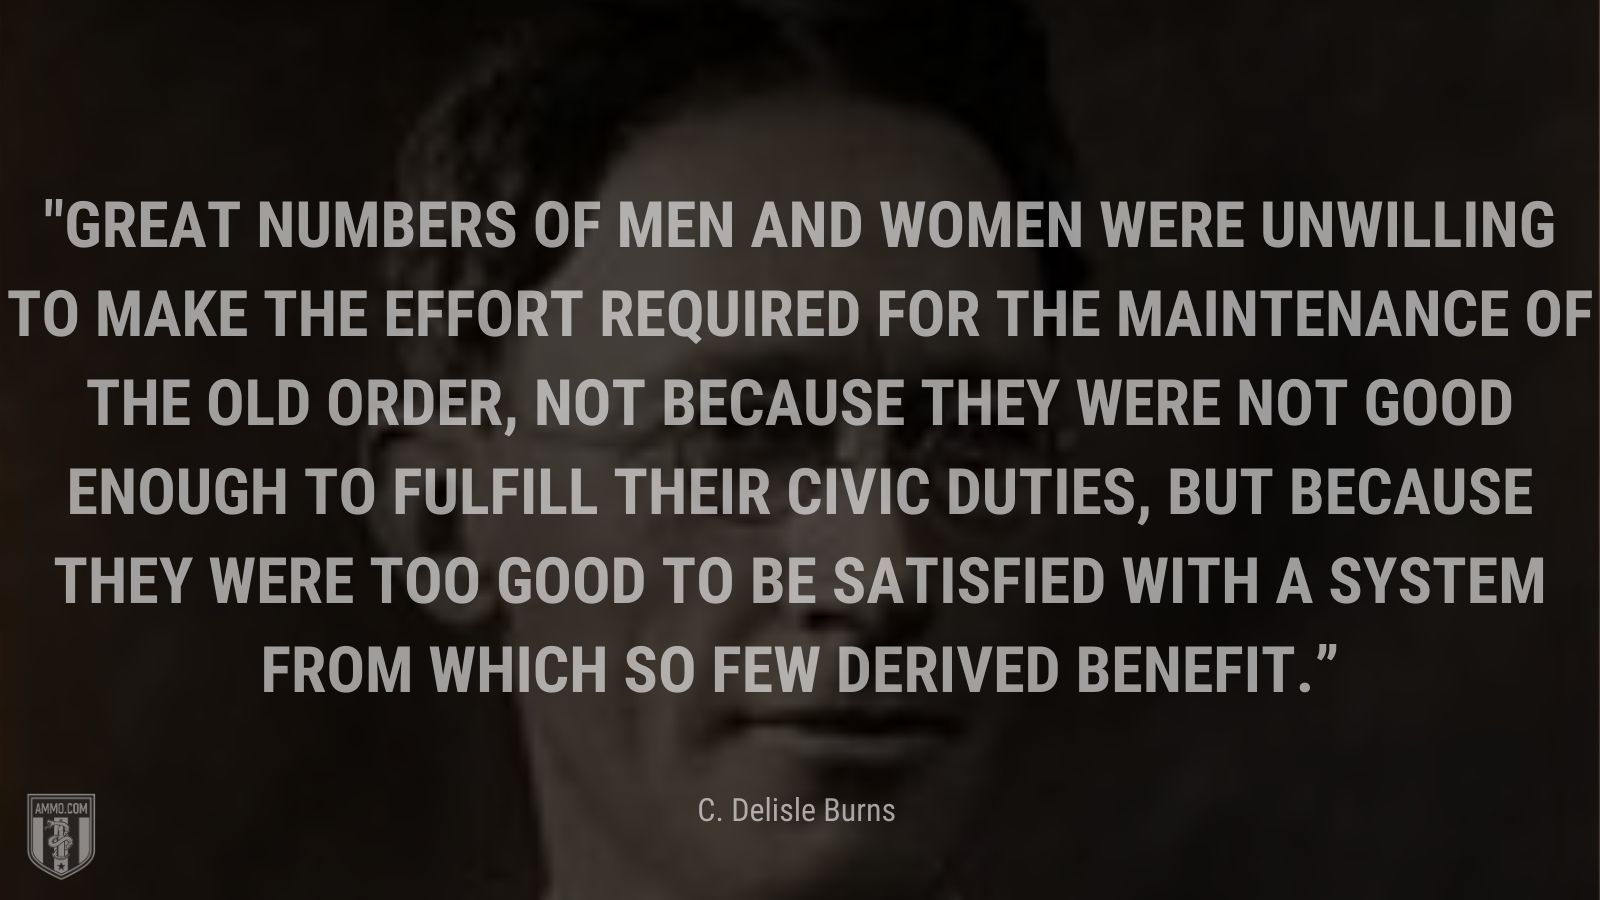 """""""Great numbers of men and women were unwilling to make the effort required for the maintenance of the old order, not because they were not good enough to fulfill their civic duties, but because they were too good to be satisfied with a system from which so few derived benefit."""" - C. Delisle Burns"""